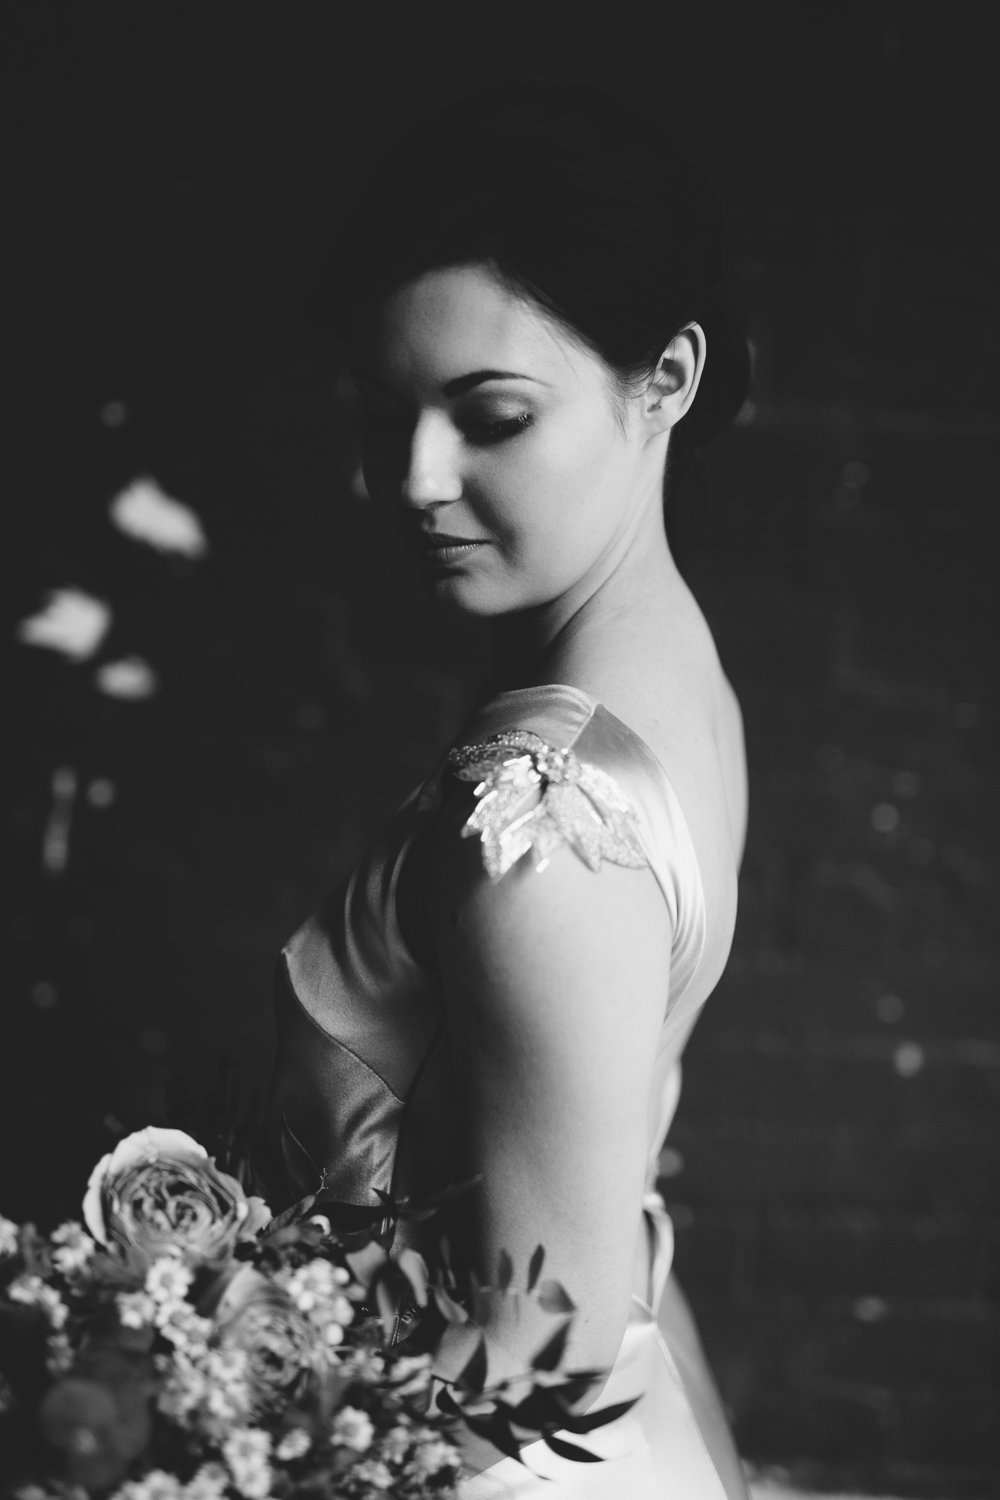 Kate-Beaumont-Wedding-Gowns-Sheffield-Shelley-Richmond-Photography-Workshop-10.jpg